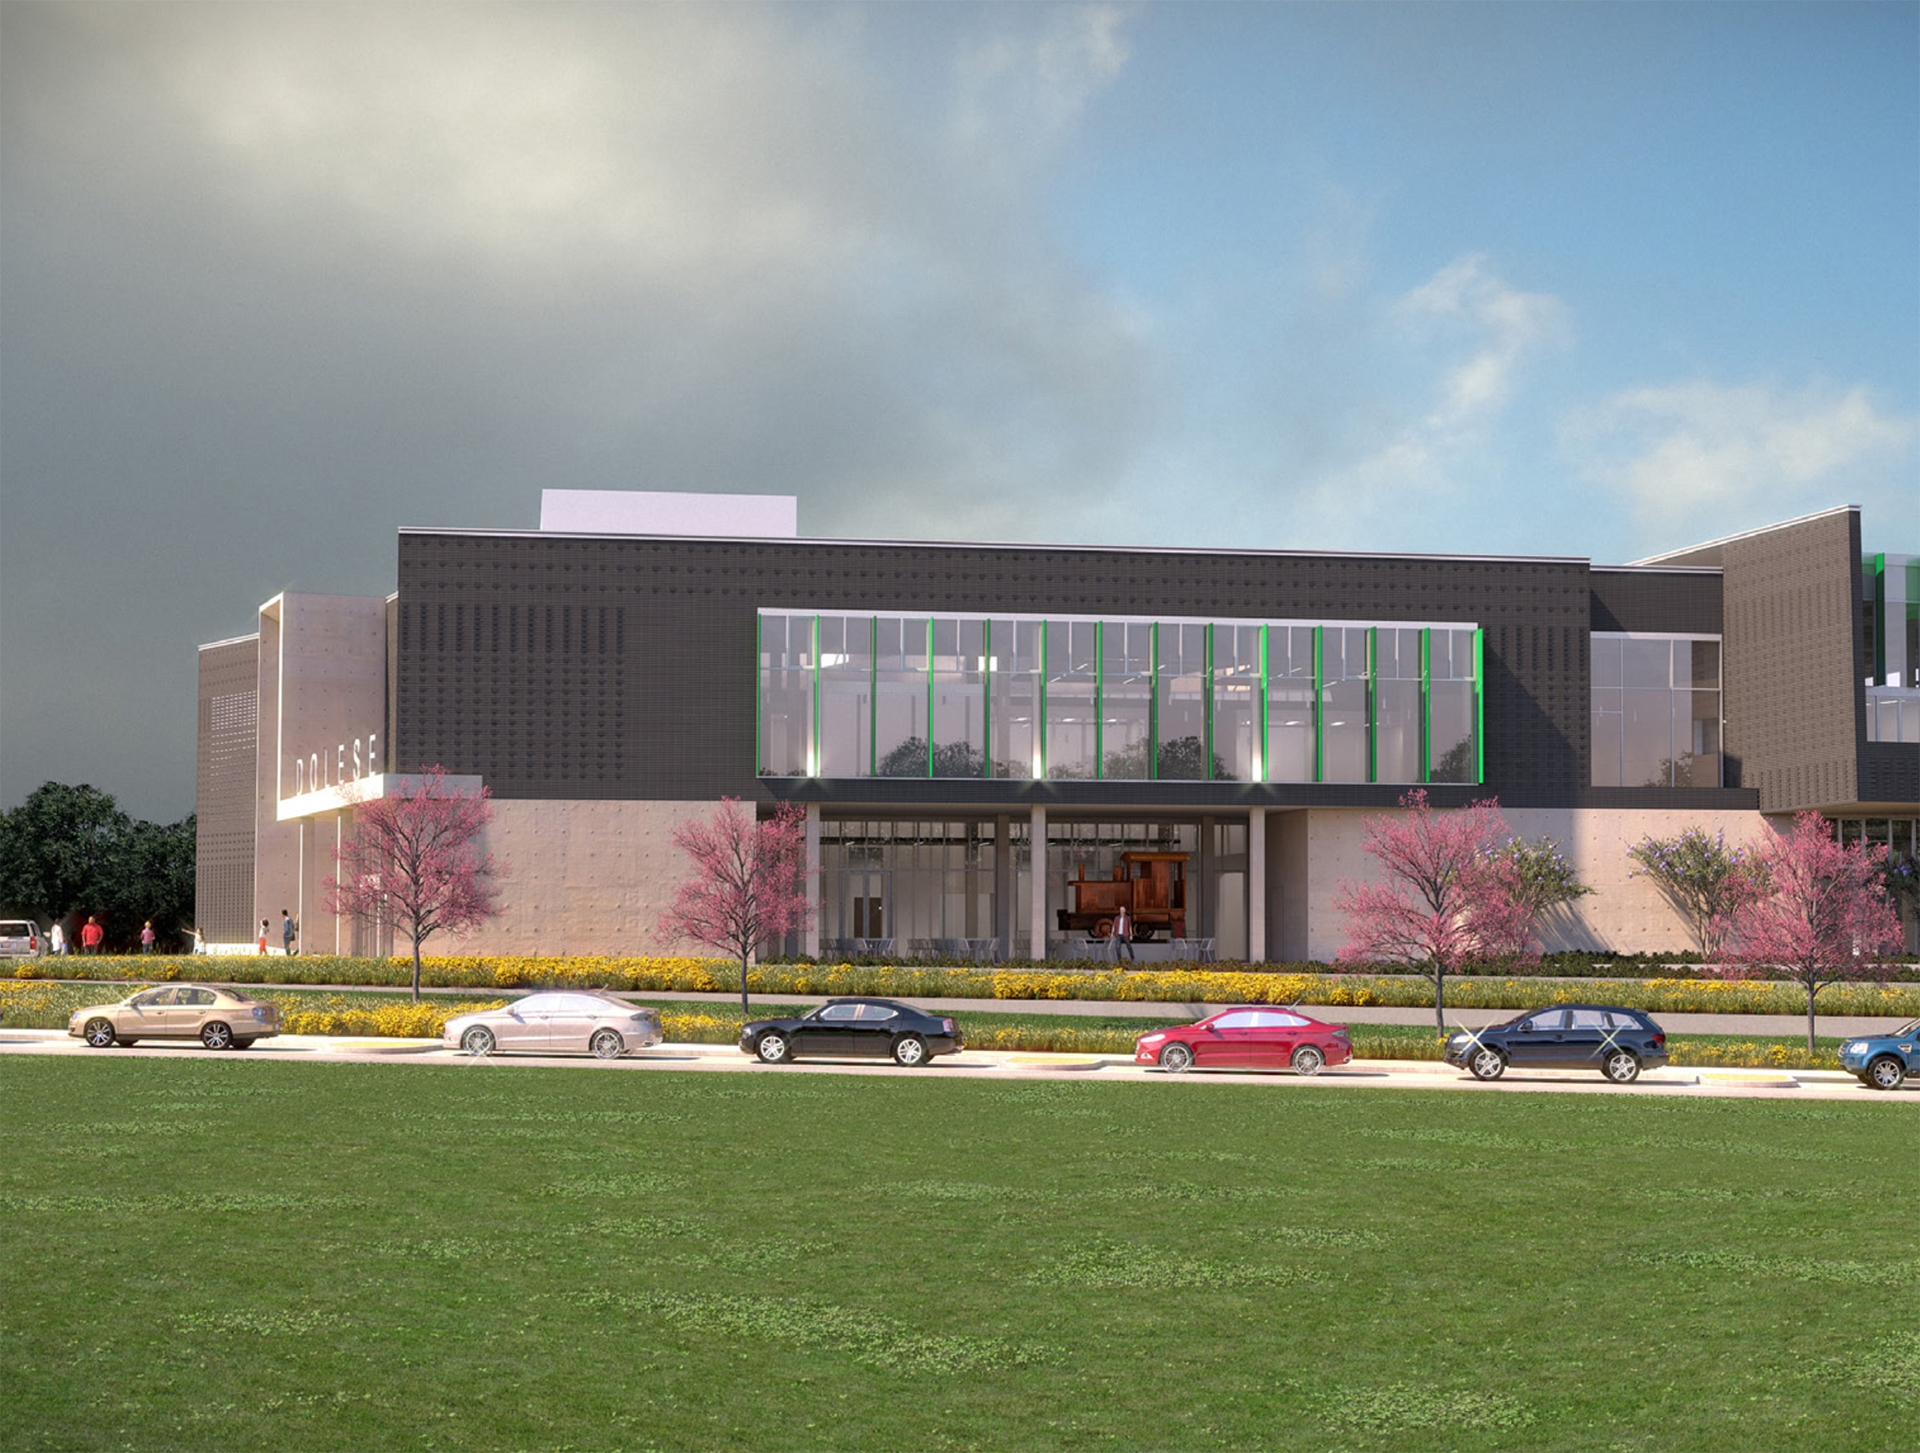 Rendering of dolese hq